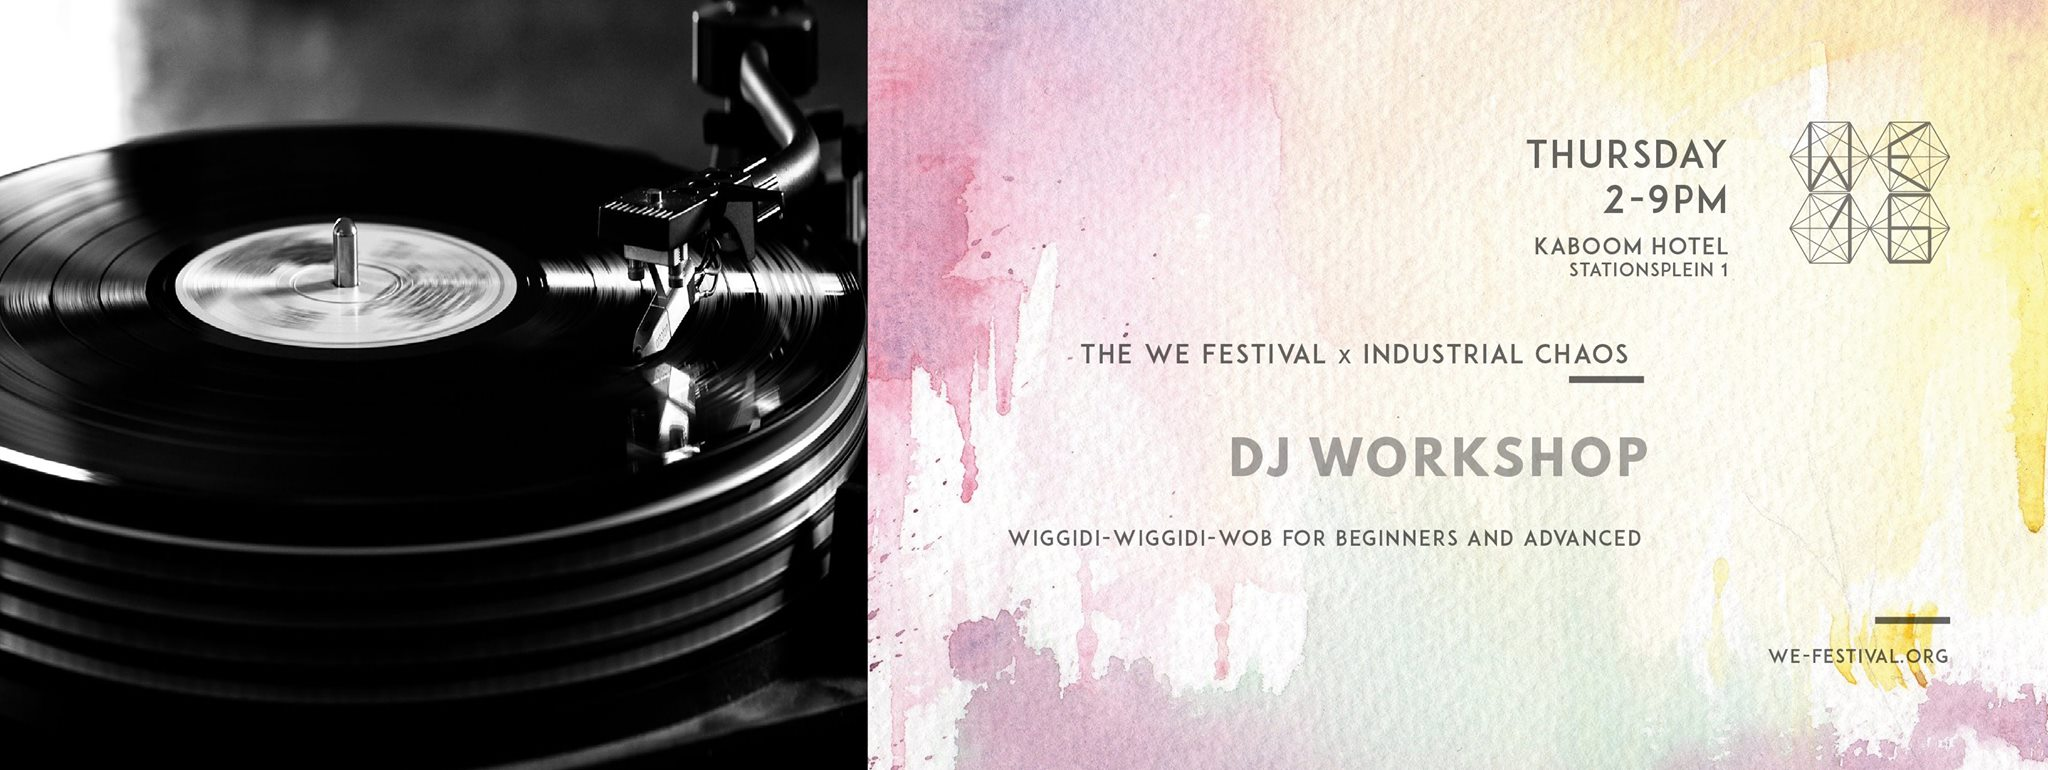 we festival dj workshop